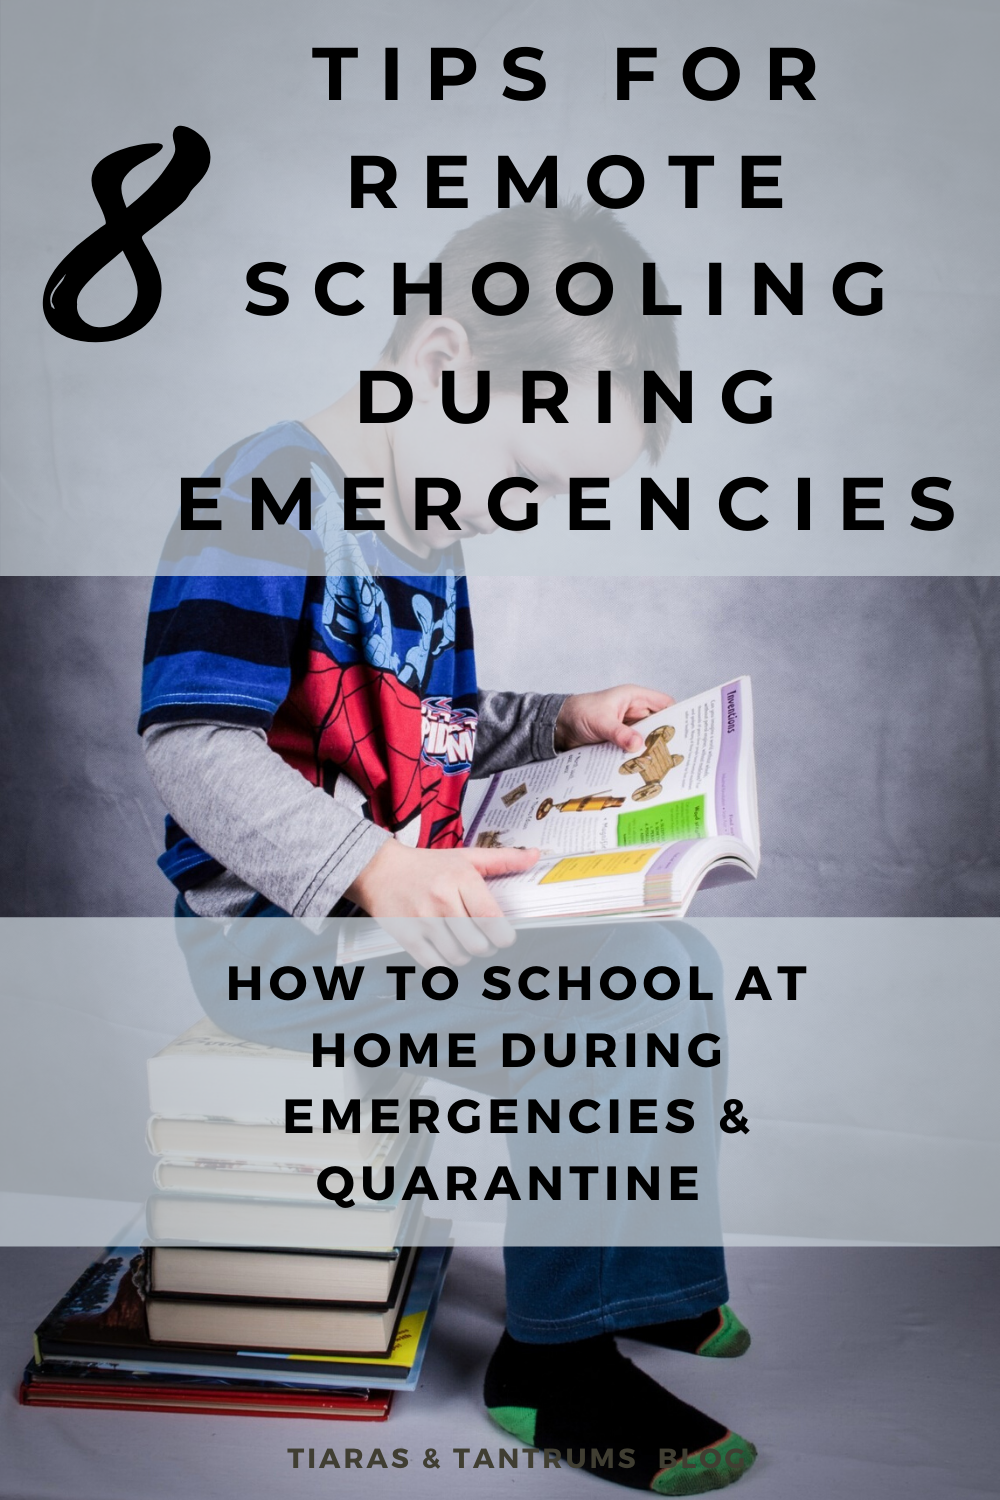 Tips for Remote Schooling During Emergencies in 2020